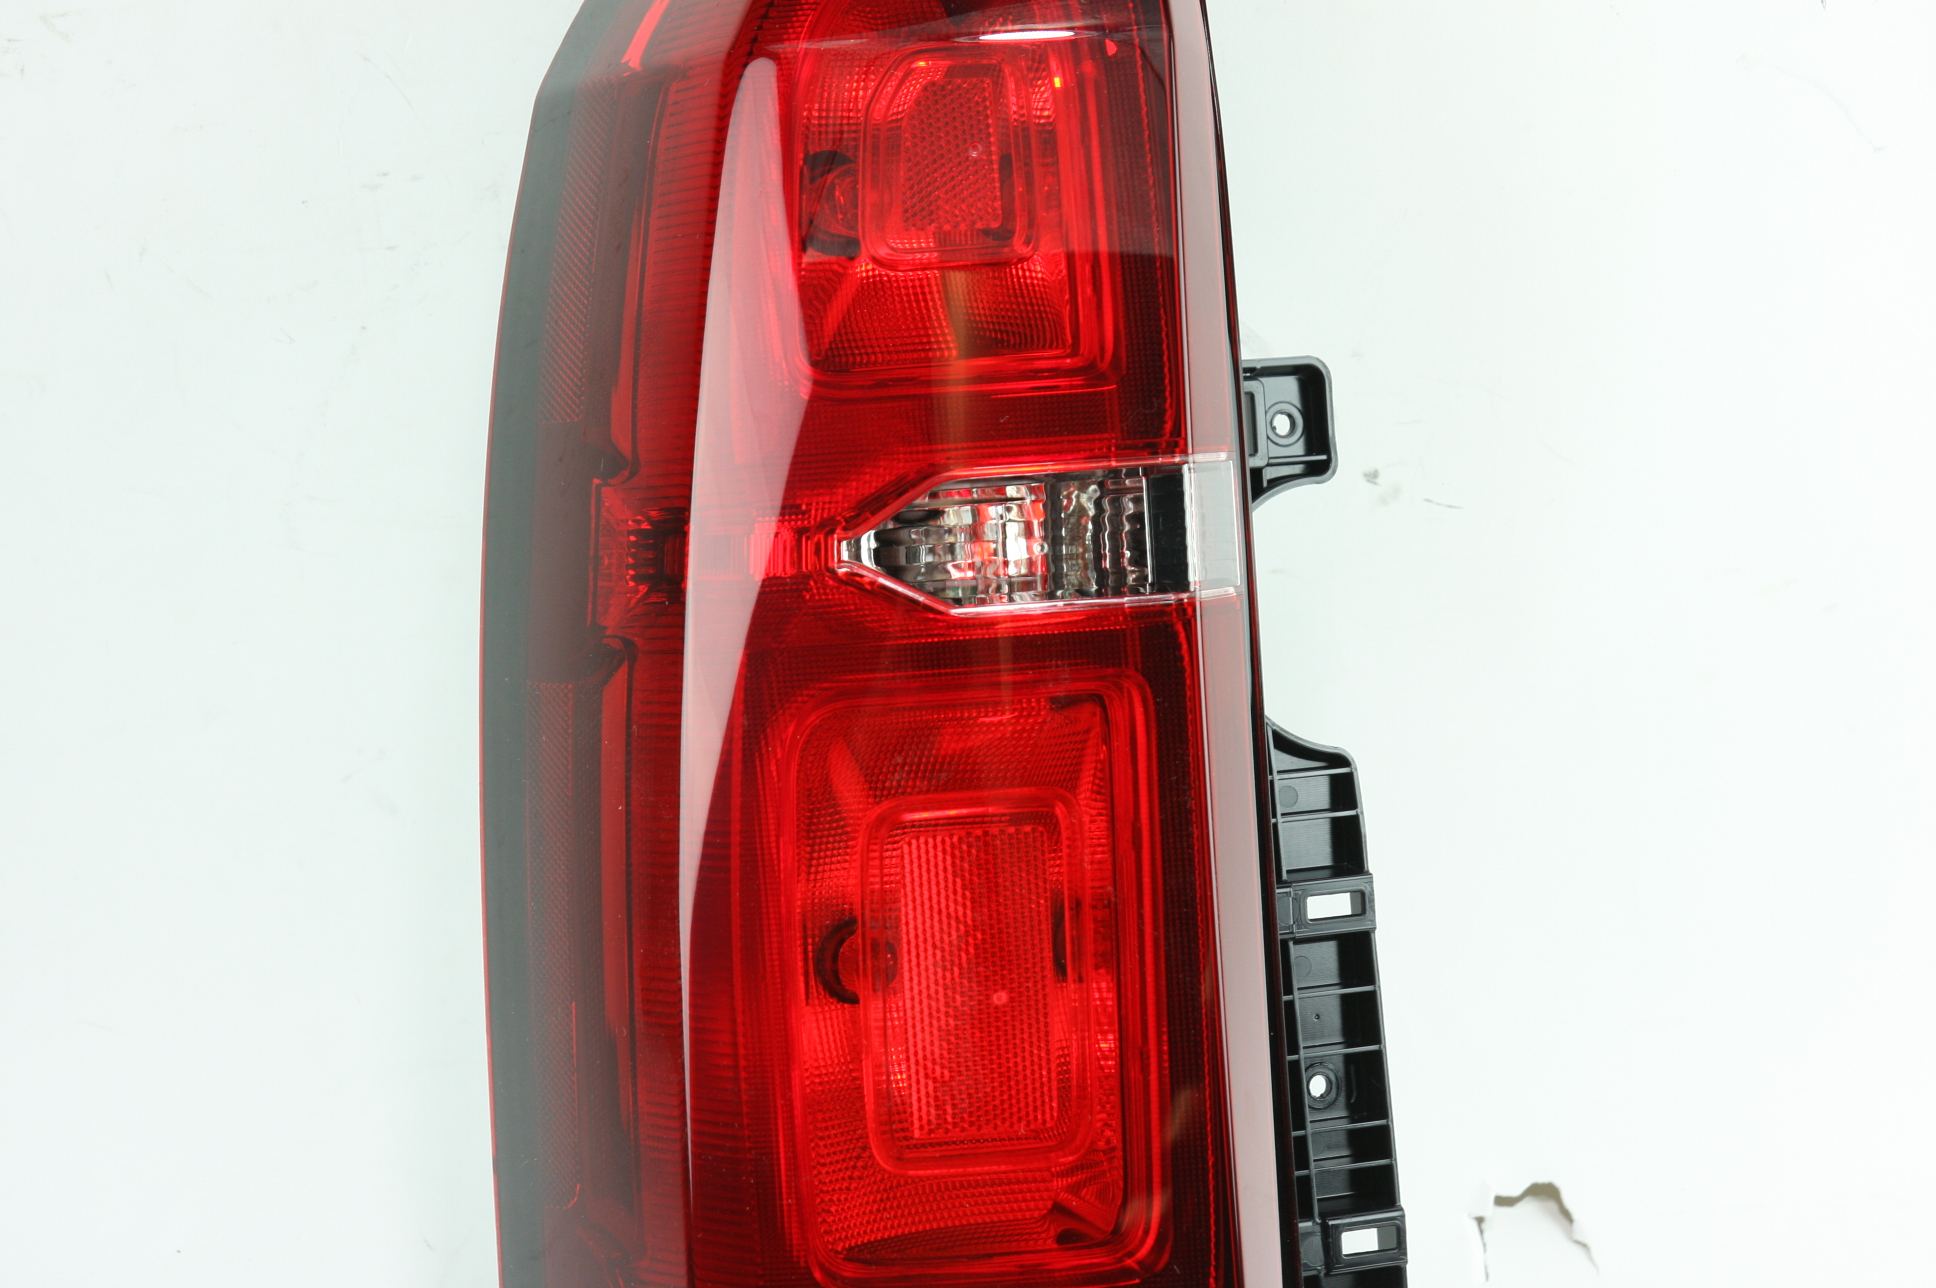 *** New Genuine OEM 23407432 GM Left Tail Lamp 15-19 Chevy Tahoe & Suburban - image 4